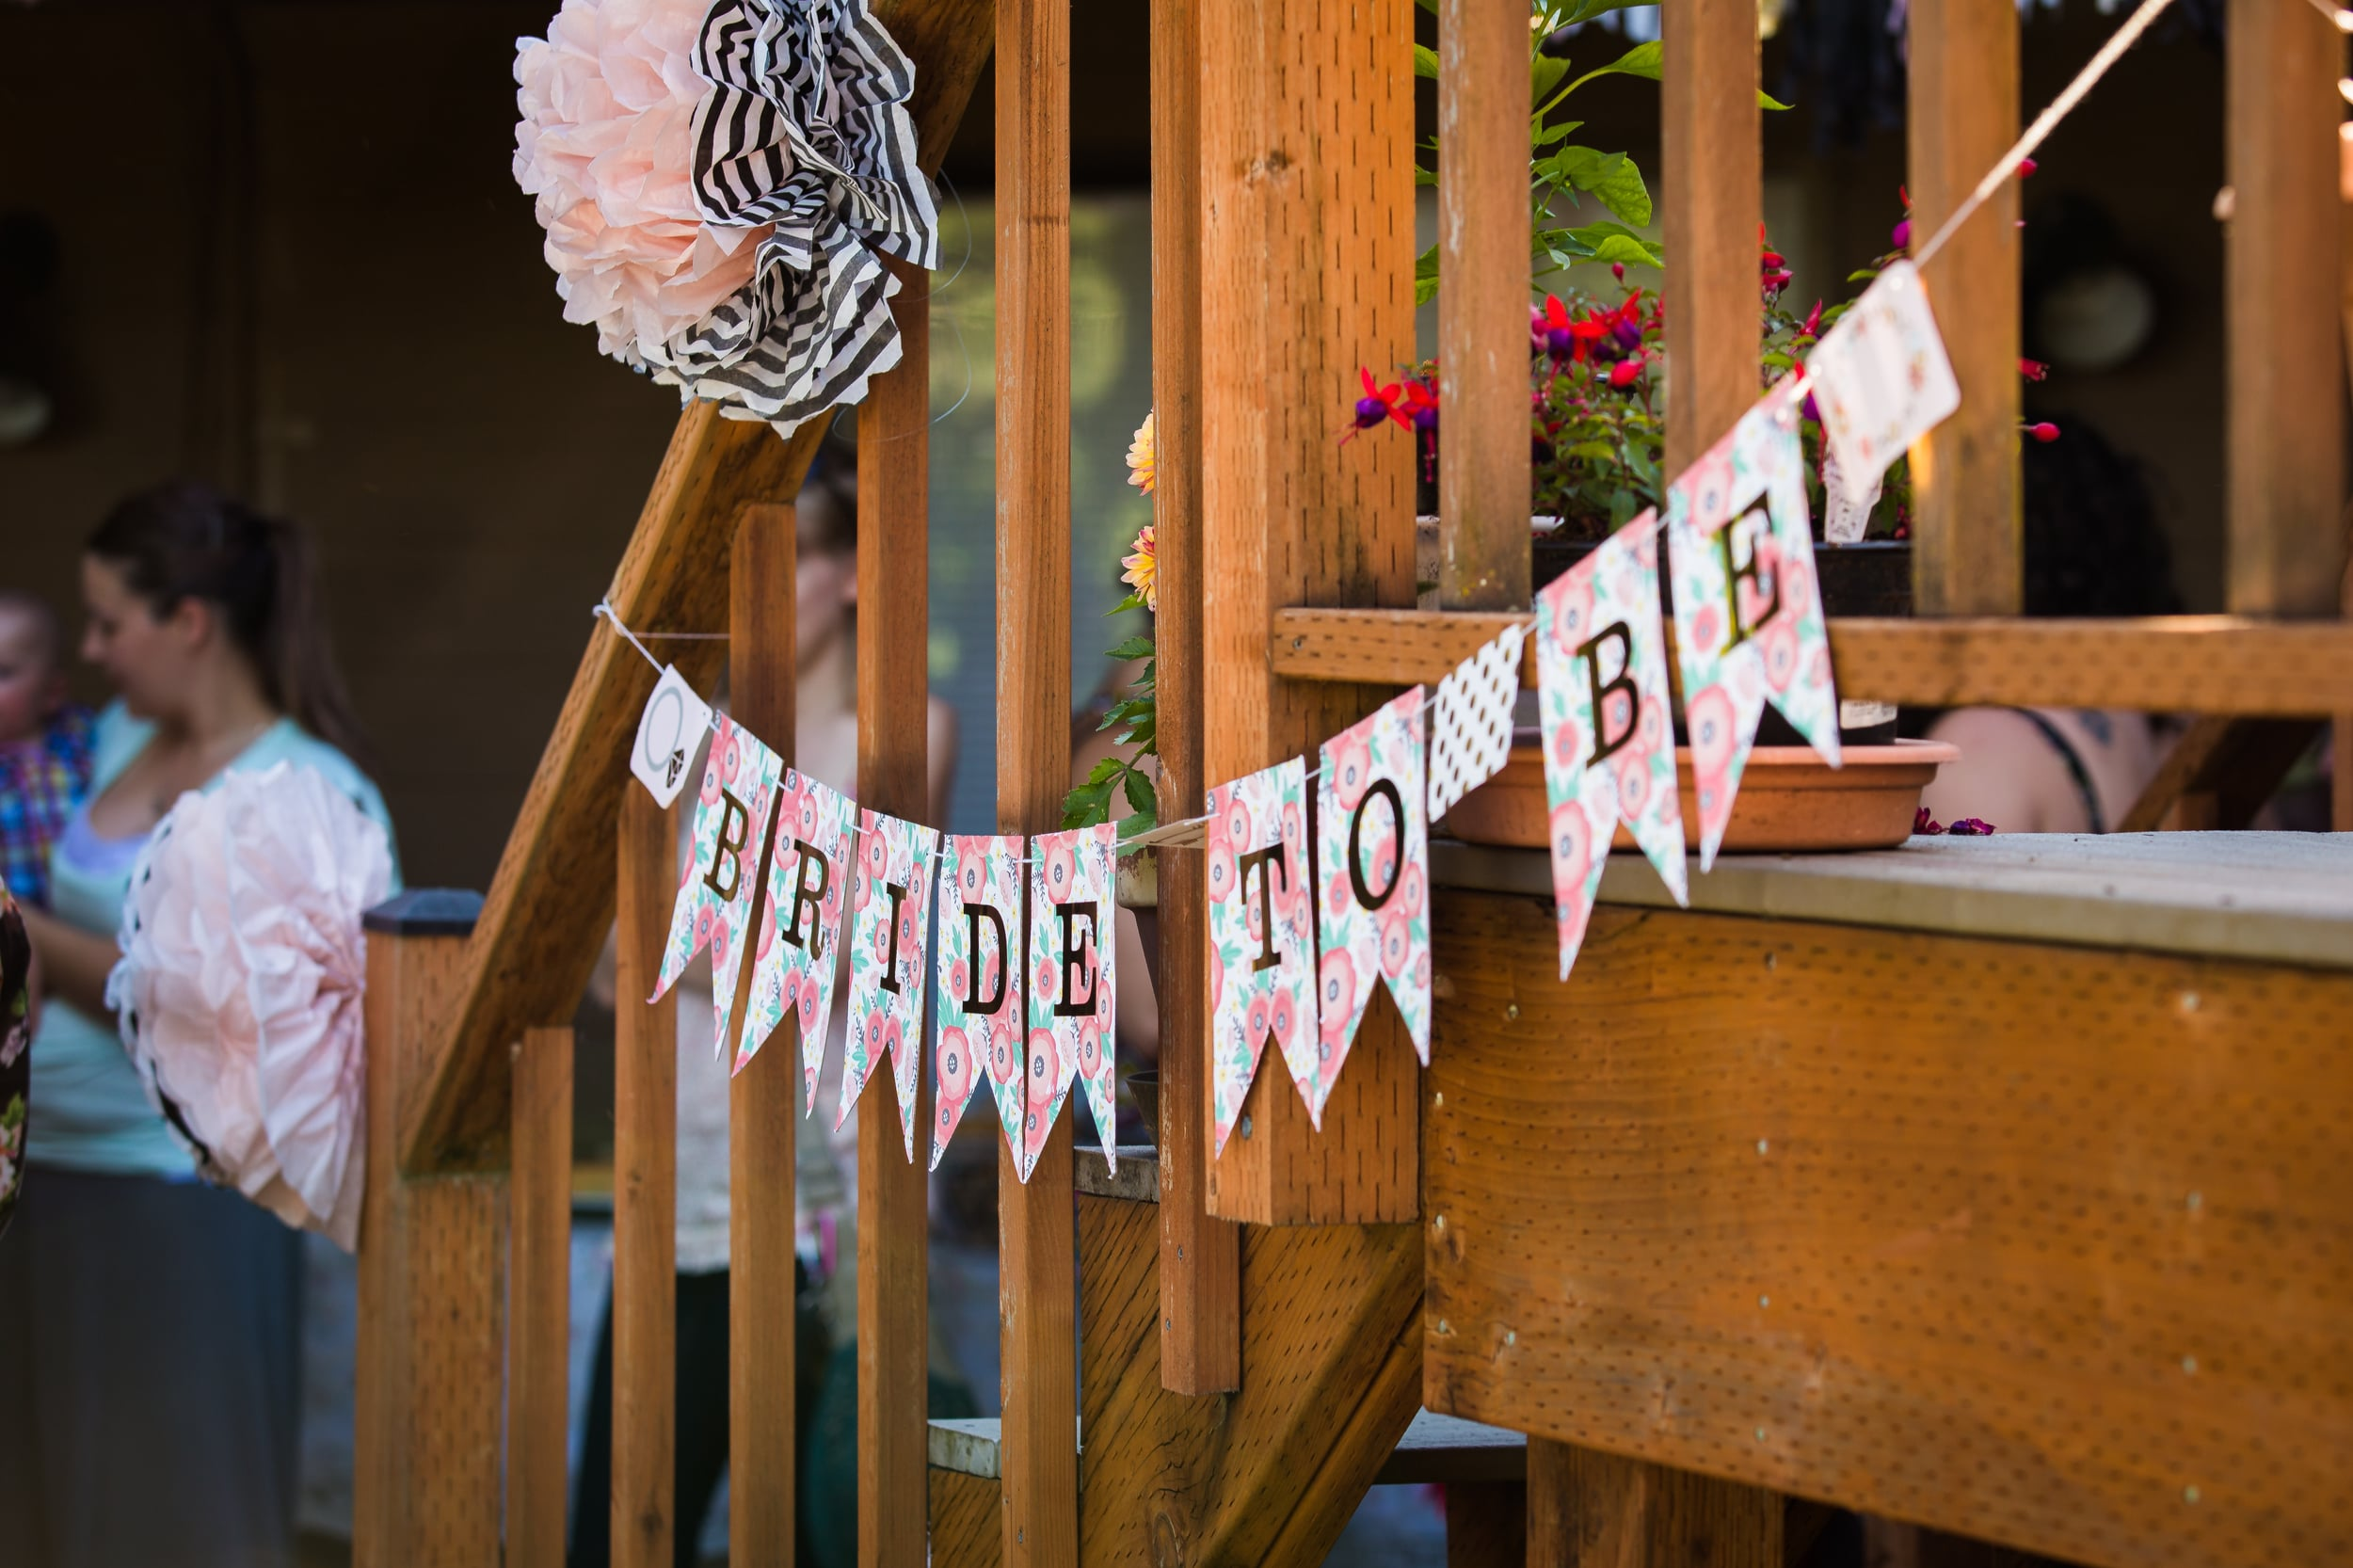 sara_bridal-shower_060715-16.jpg